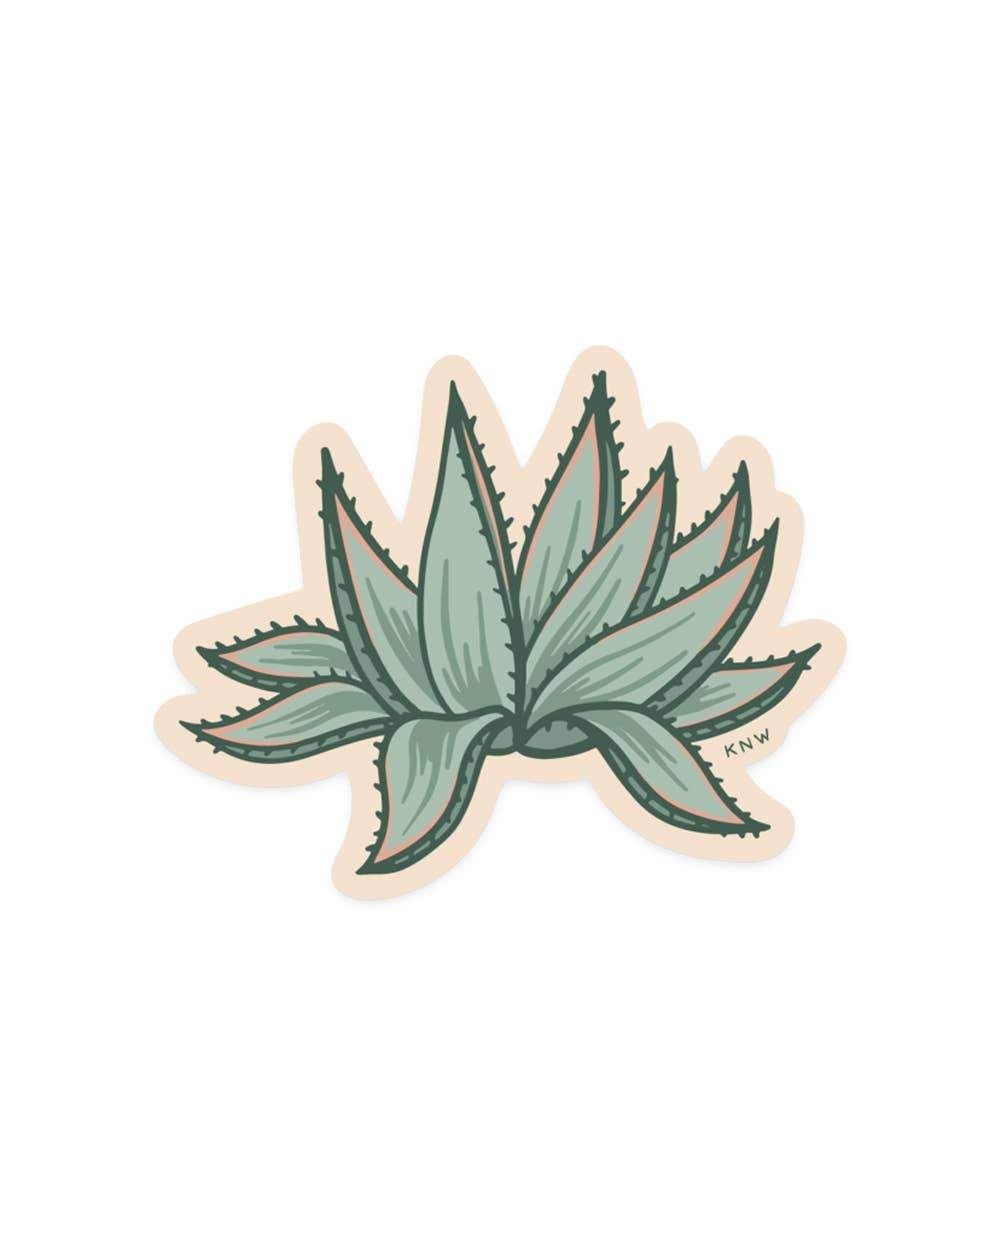 Agave - Sticker - for sale by Succy Crafts